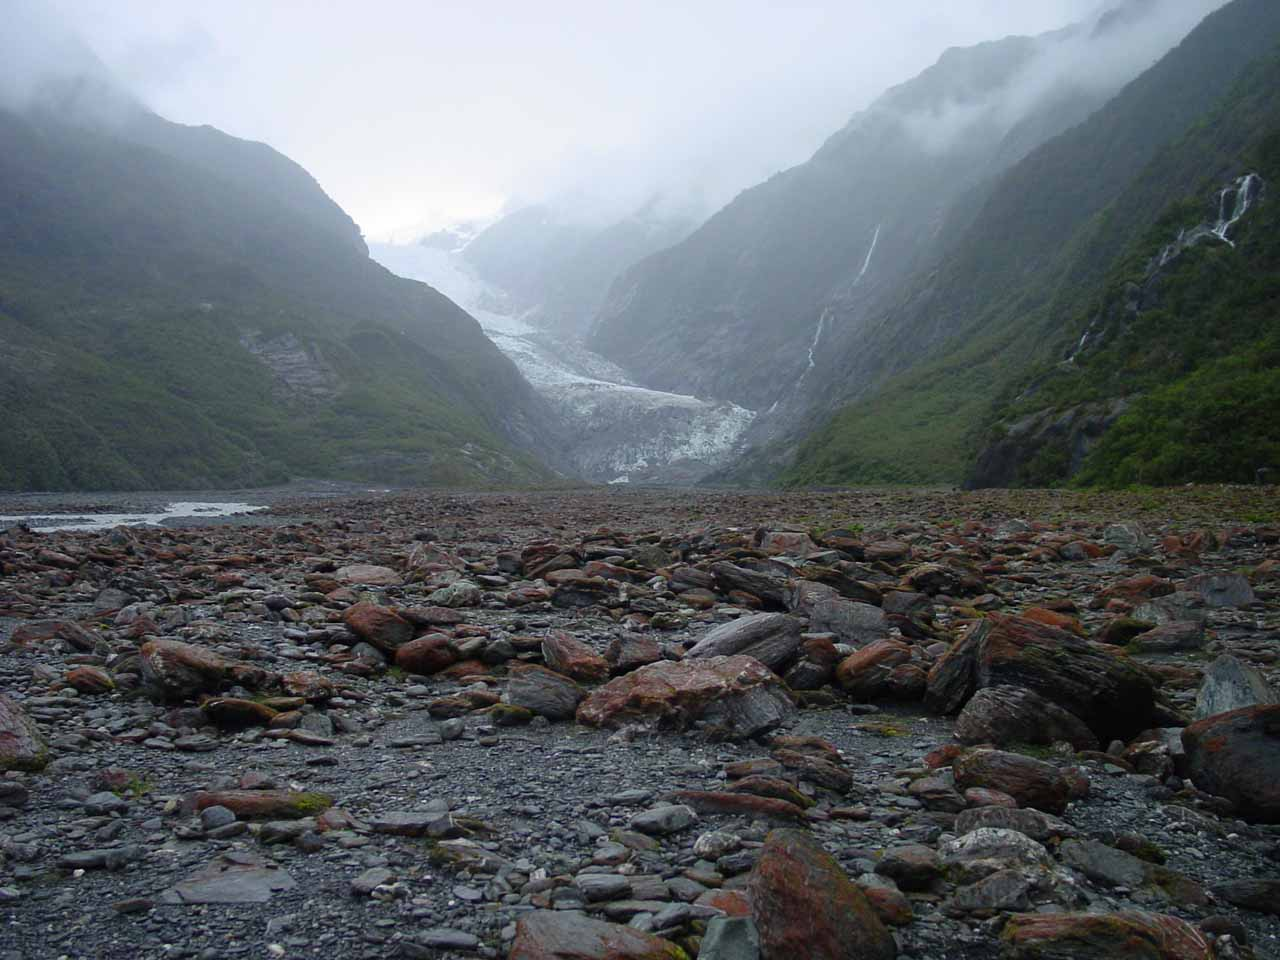 Walking amidst a jumble of boulders towards the terminus of the Franz Josef Glacier